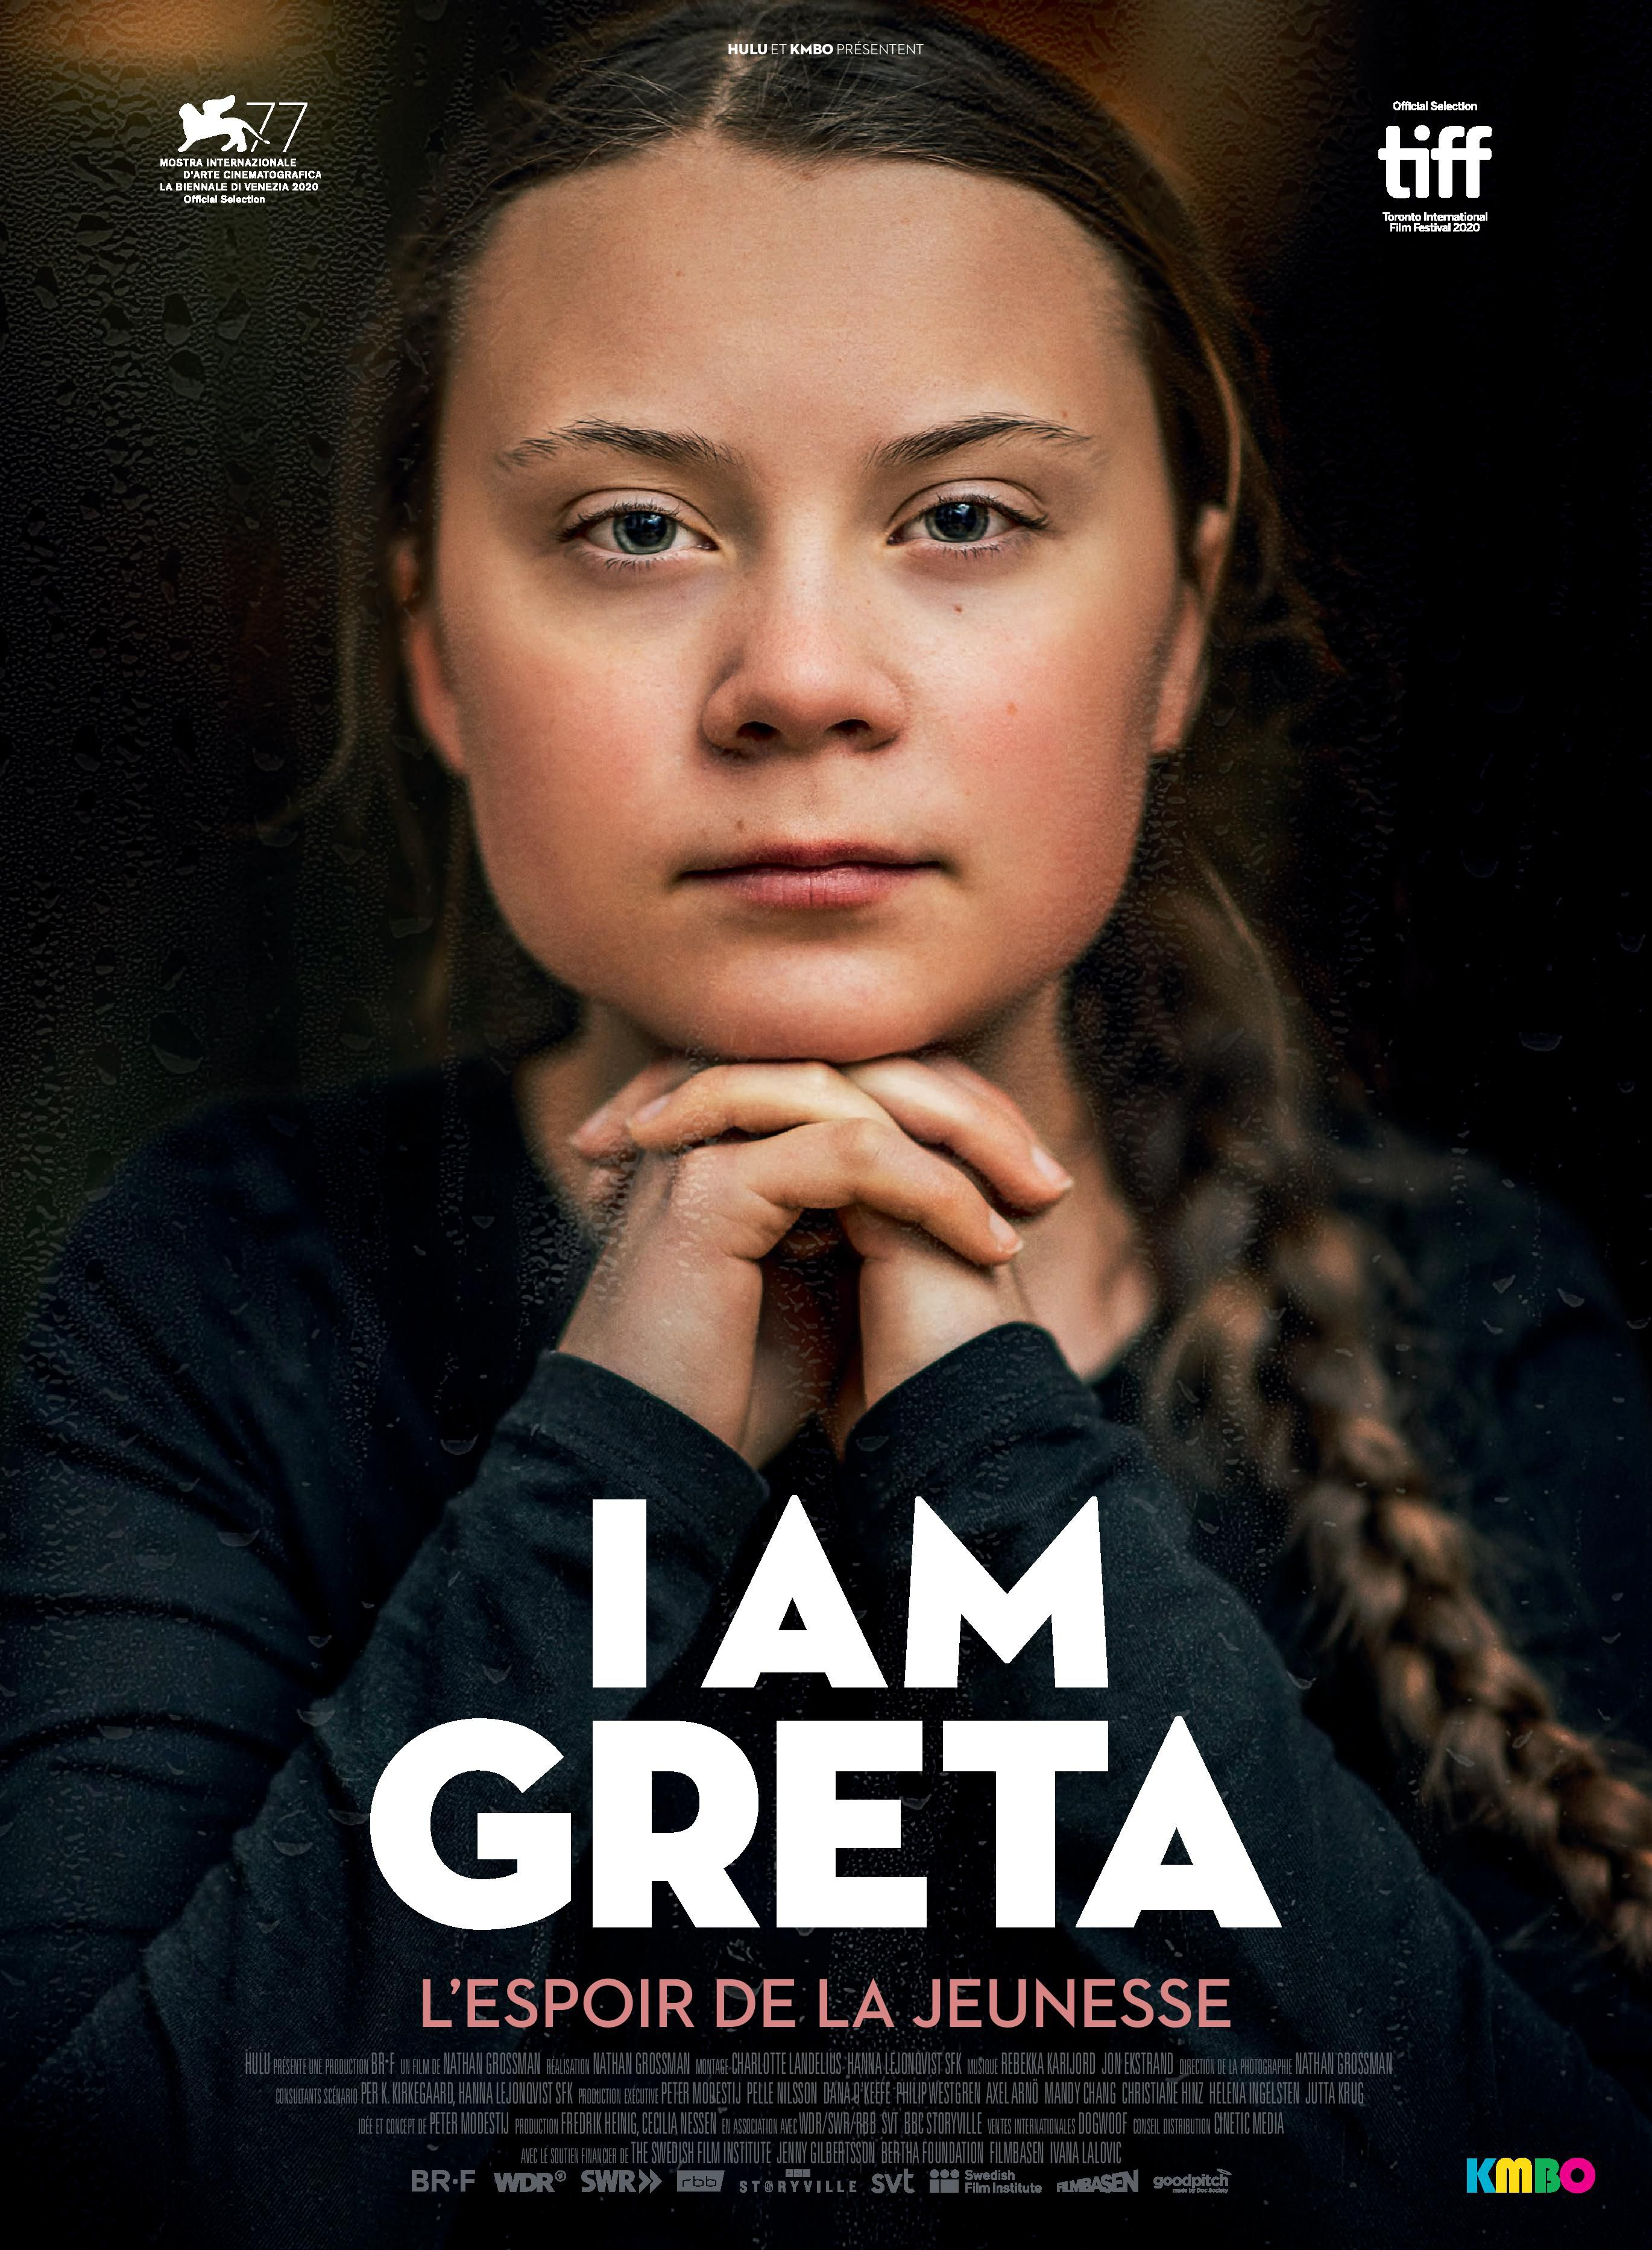 I Am Greta - Documentaire (2021) streaming VF gratuit complet